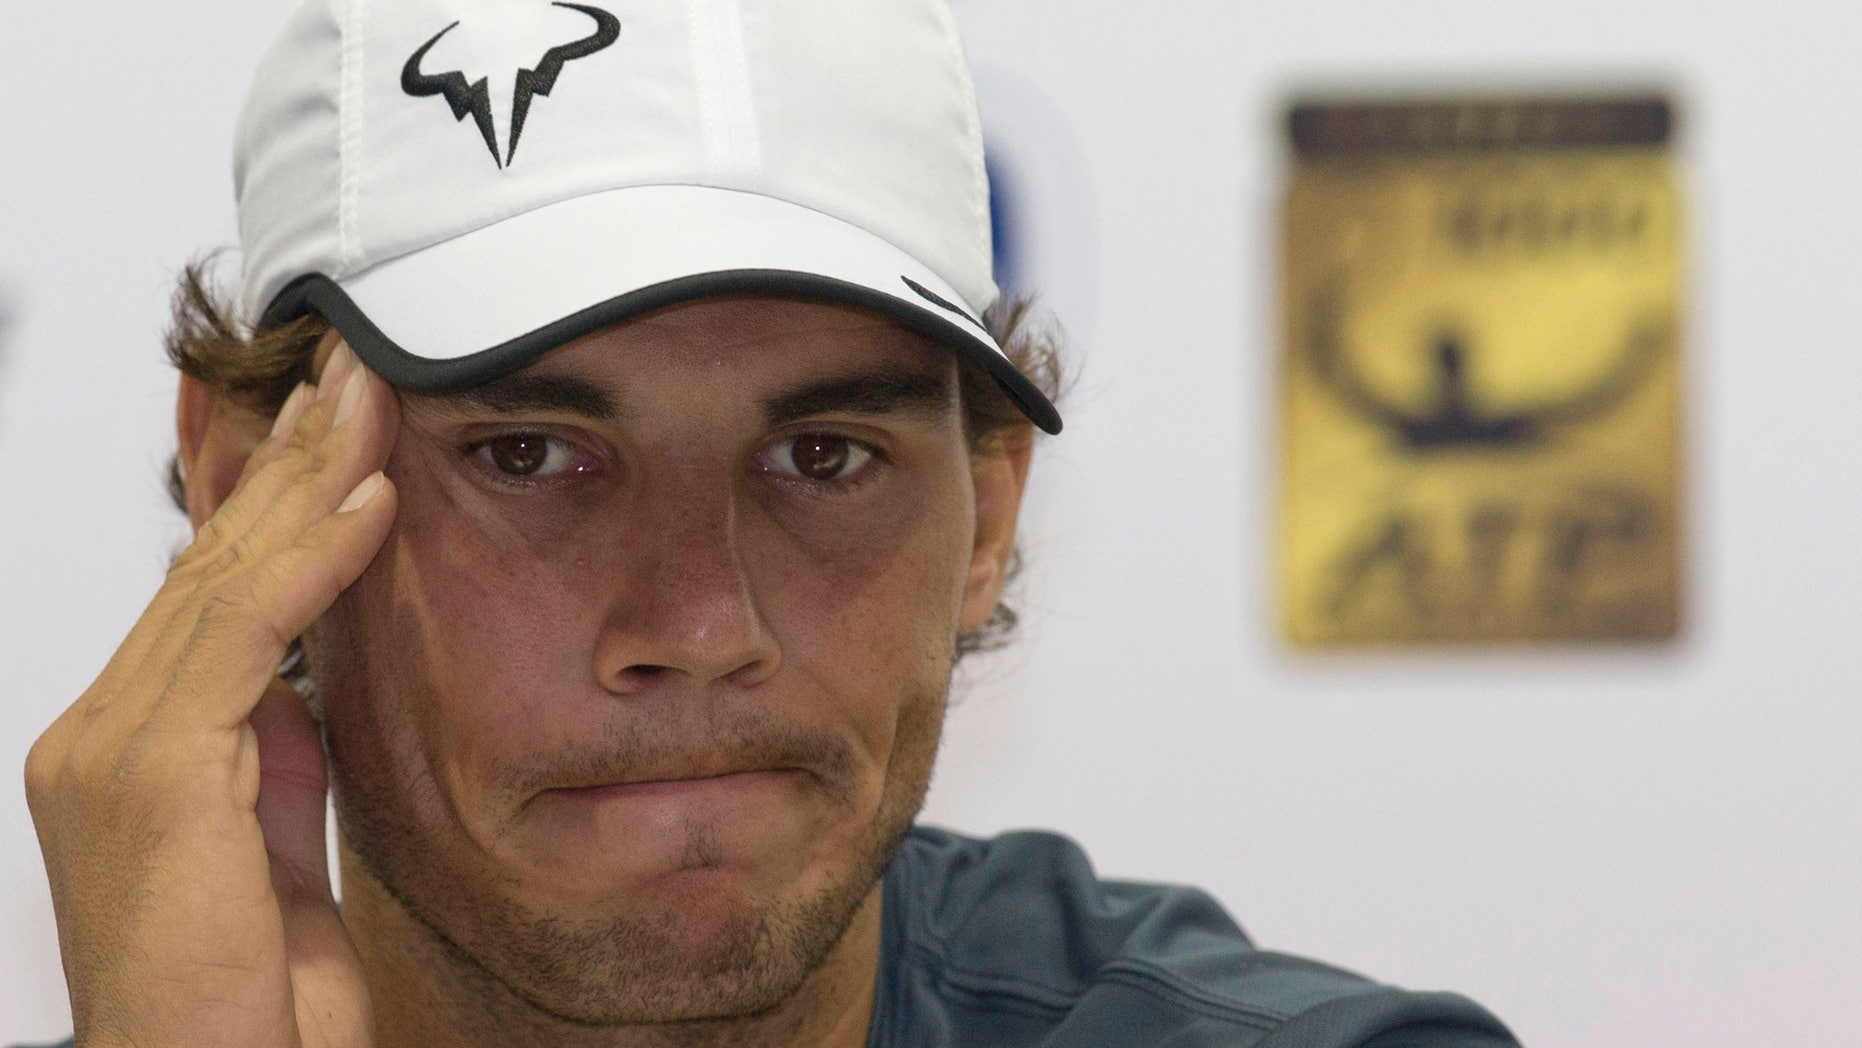 Spain's Rafael Nadal listens to questions during a press conference for the Shanghai Masters tennis tournament at the Qizhong Forest Sports City Tennis Center, in Shanghai, China, Tuesday, Oct. 8, 2013. (AP Photo/Ng Han Guan)